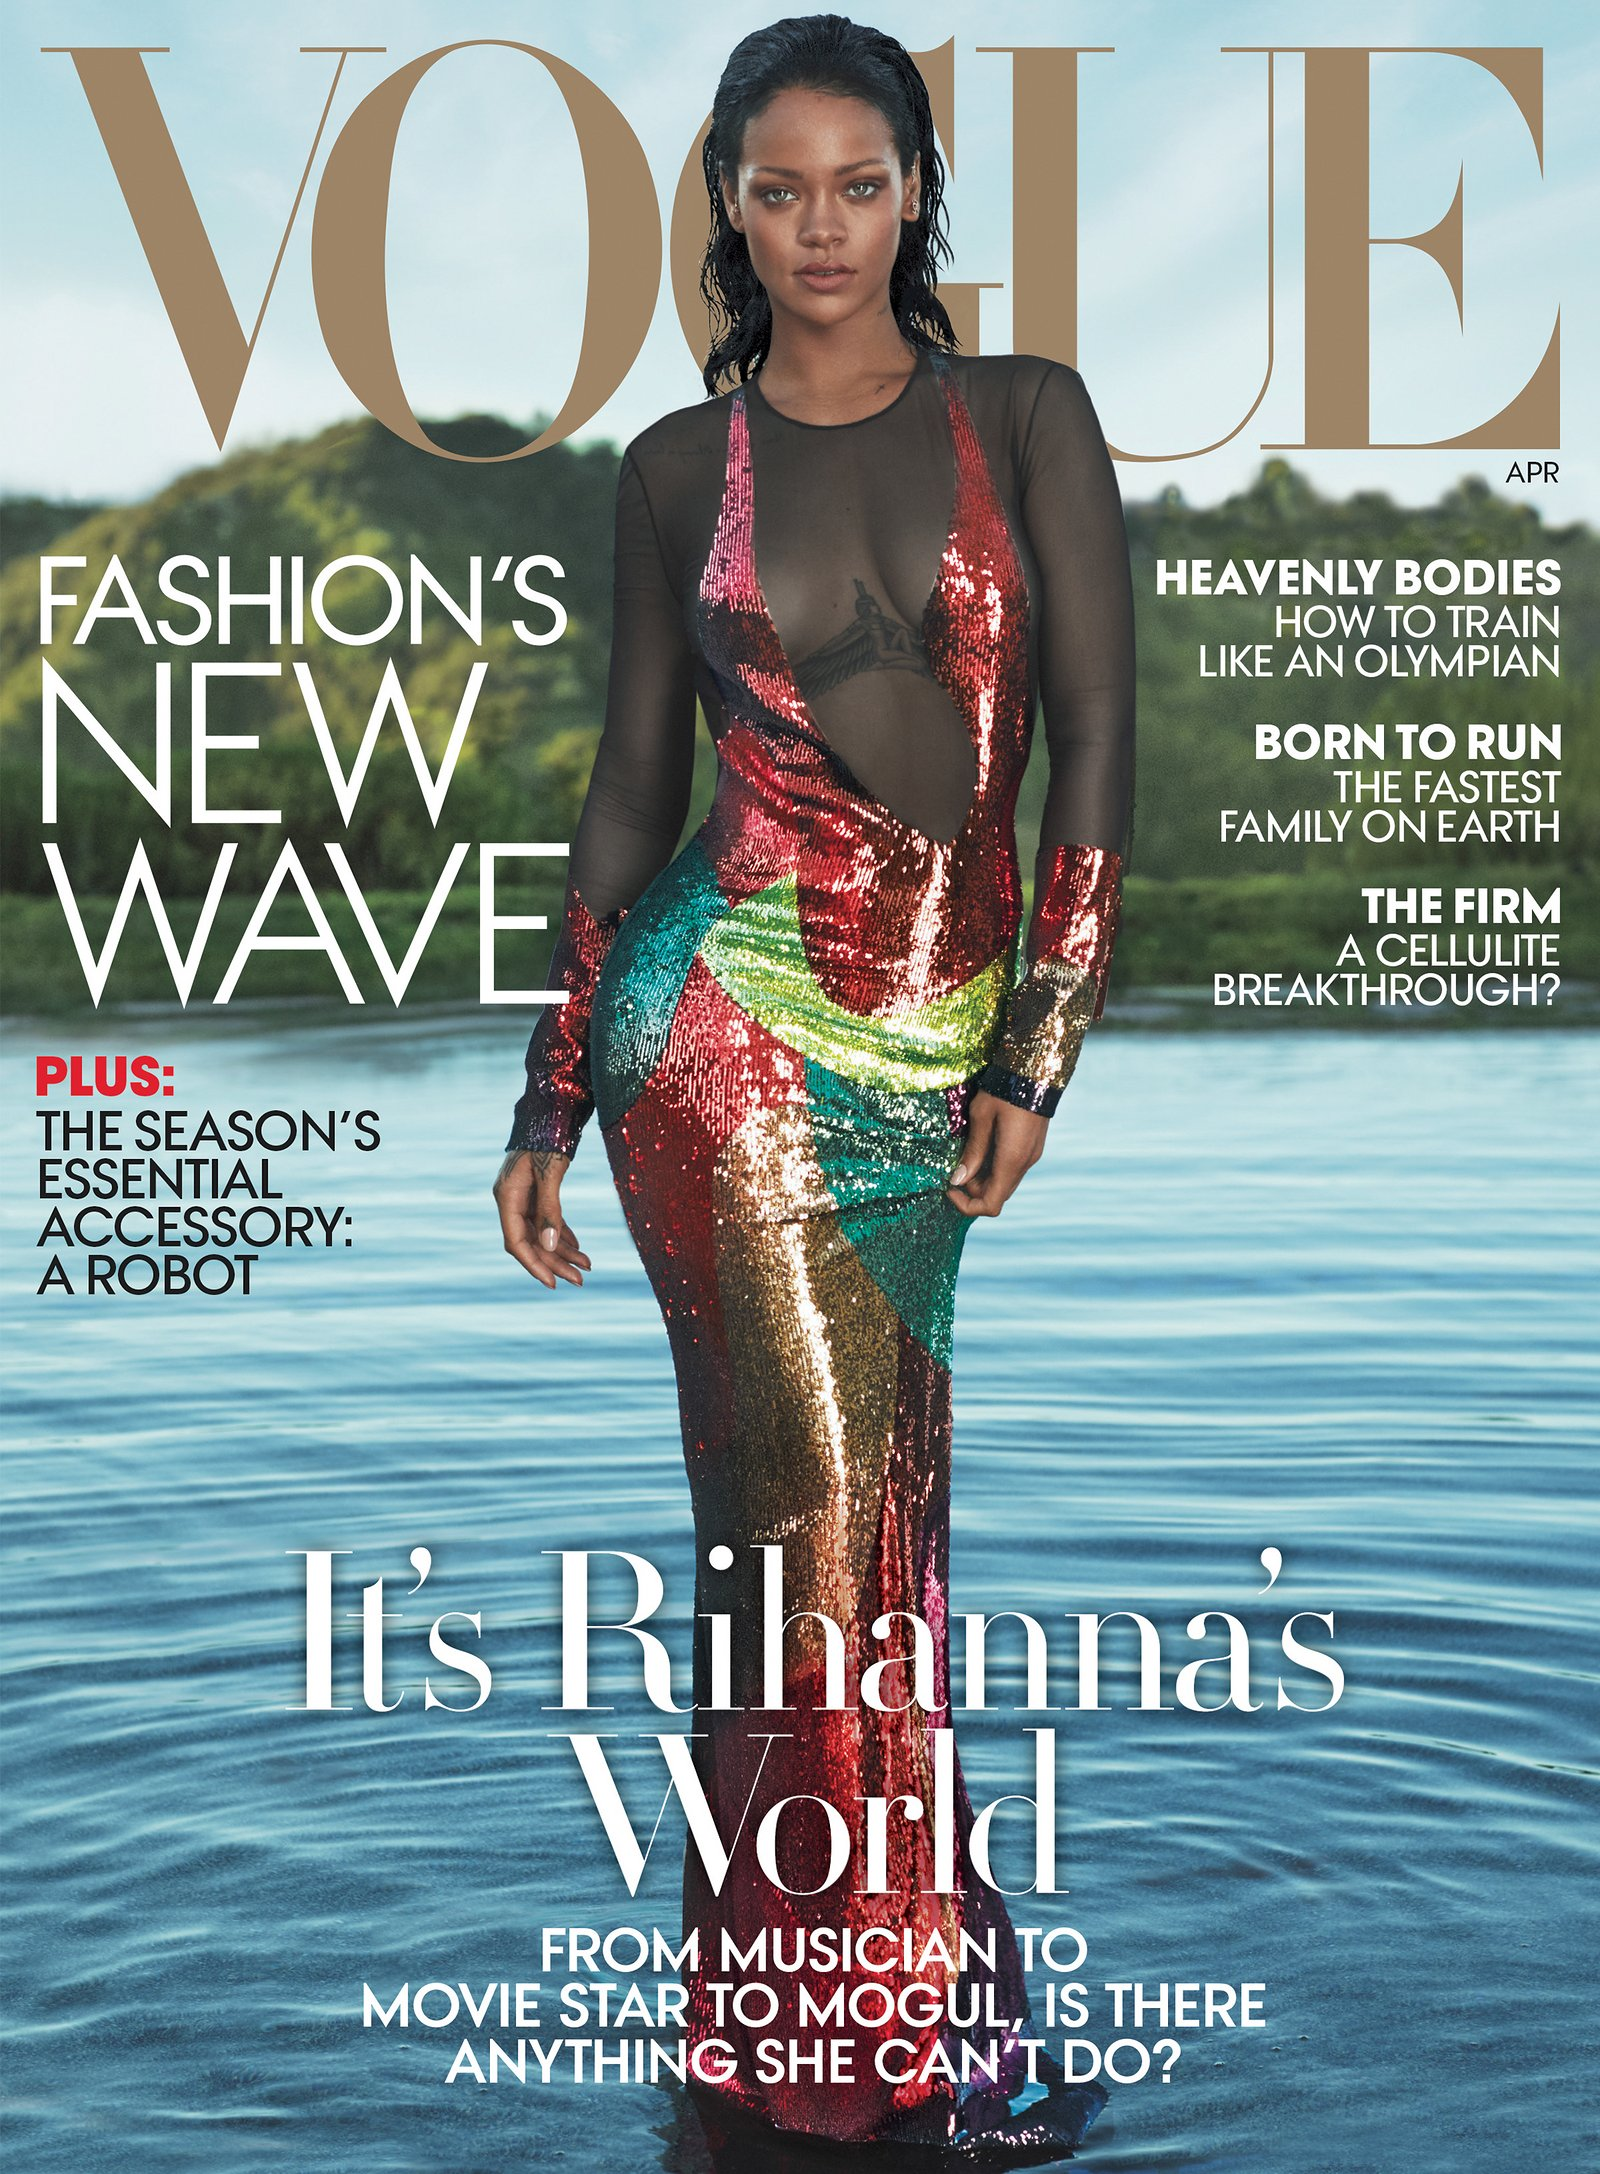 Rihanna Vogue April 2016 cover